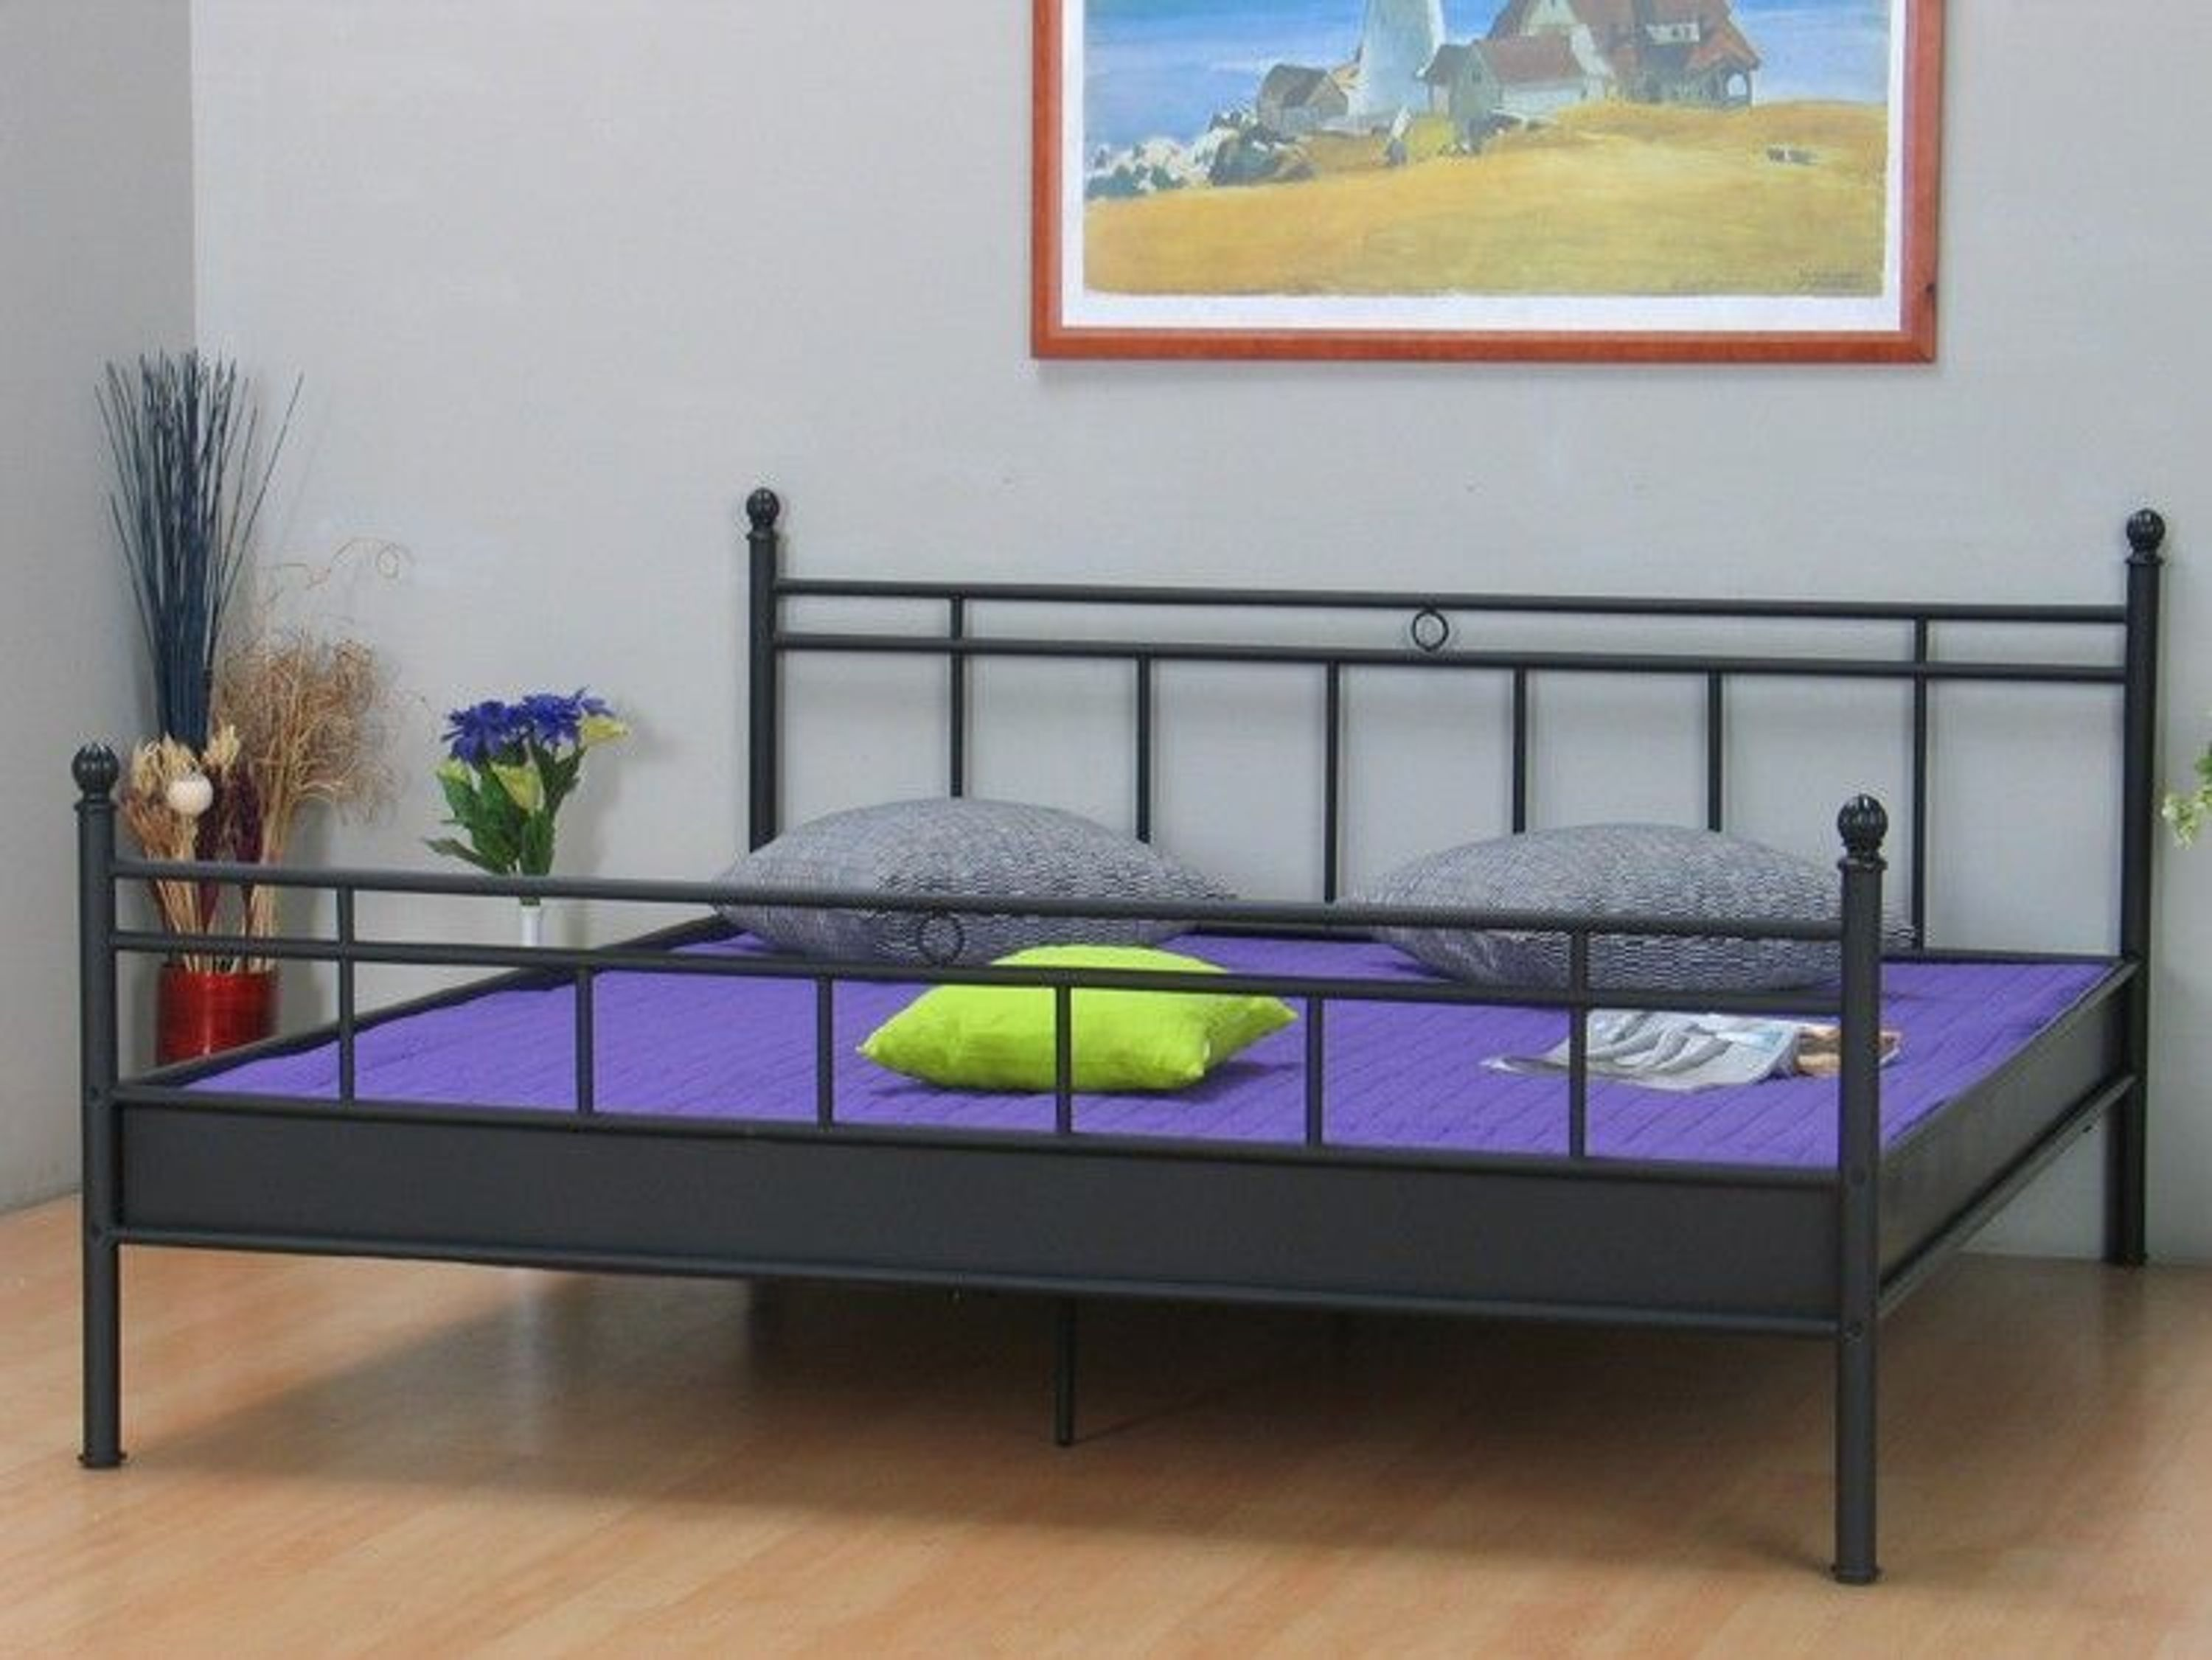 metallbett bett 140x200 schwarz doppelbett ehebett neu kaufen bei. Black Bedroom Furniture Sets. Home Design Ideas